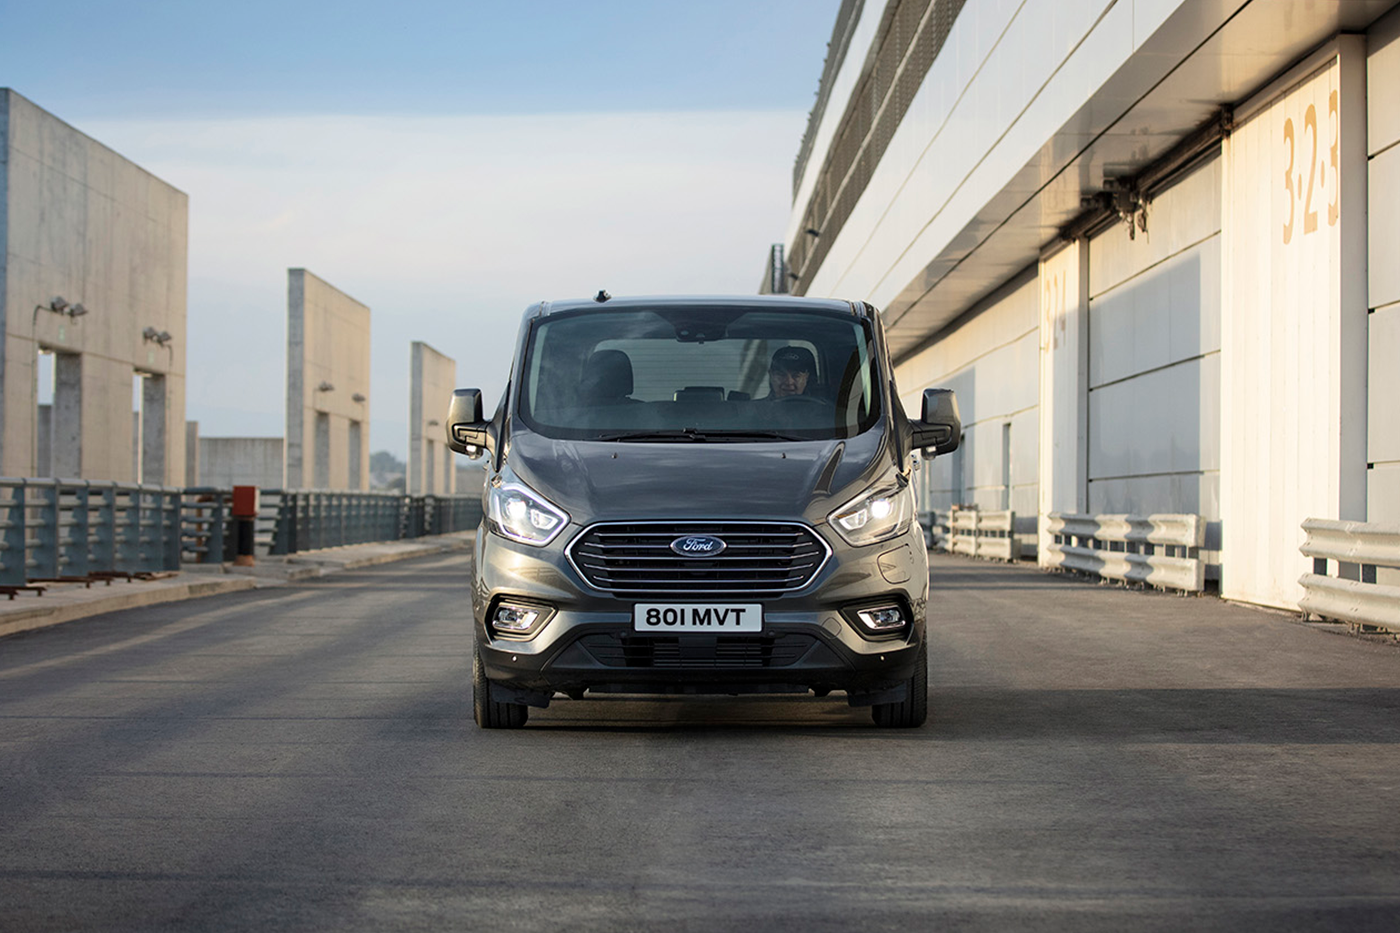 2019_FORD_TOURNEO_CUSTOM_PHEV__03-2.png